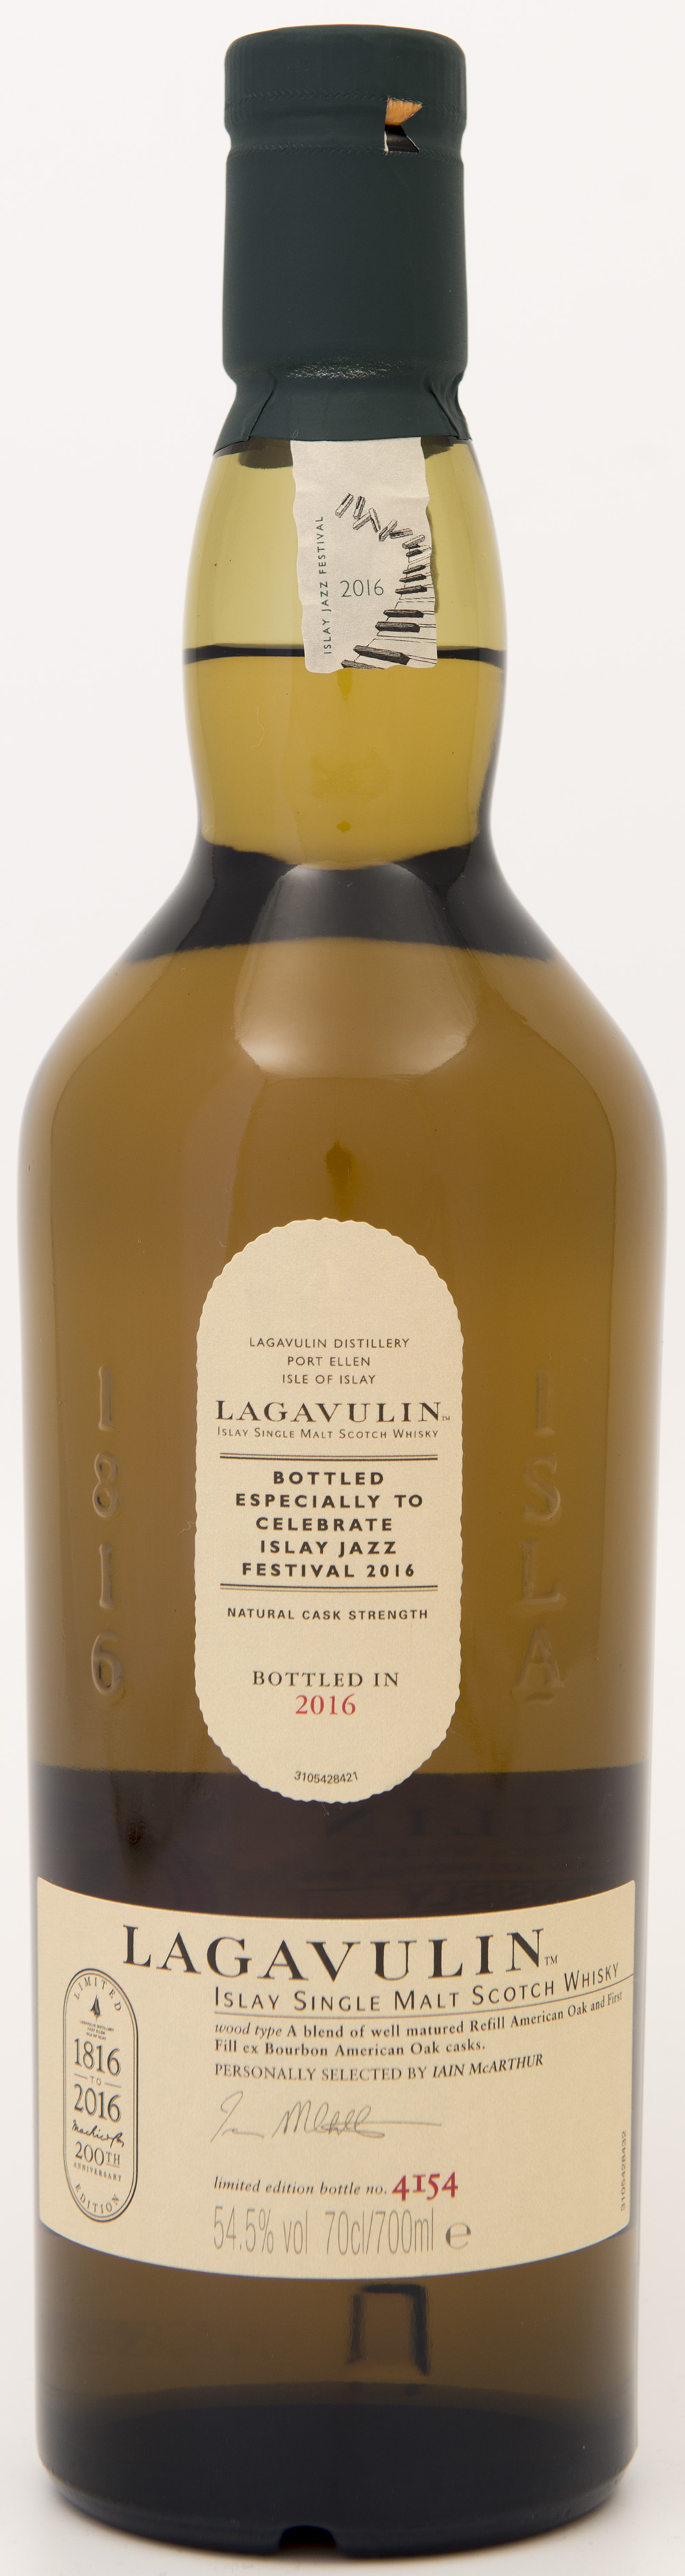 Billede: DSC_3241 - Lagavulin Islay Jazz Festival 2016 - bottle front.jpg